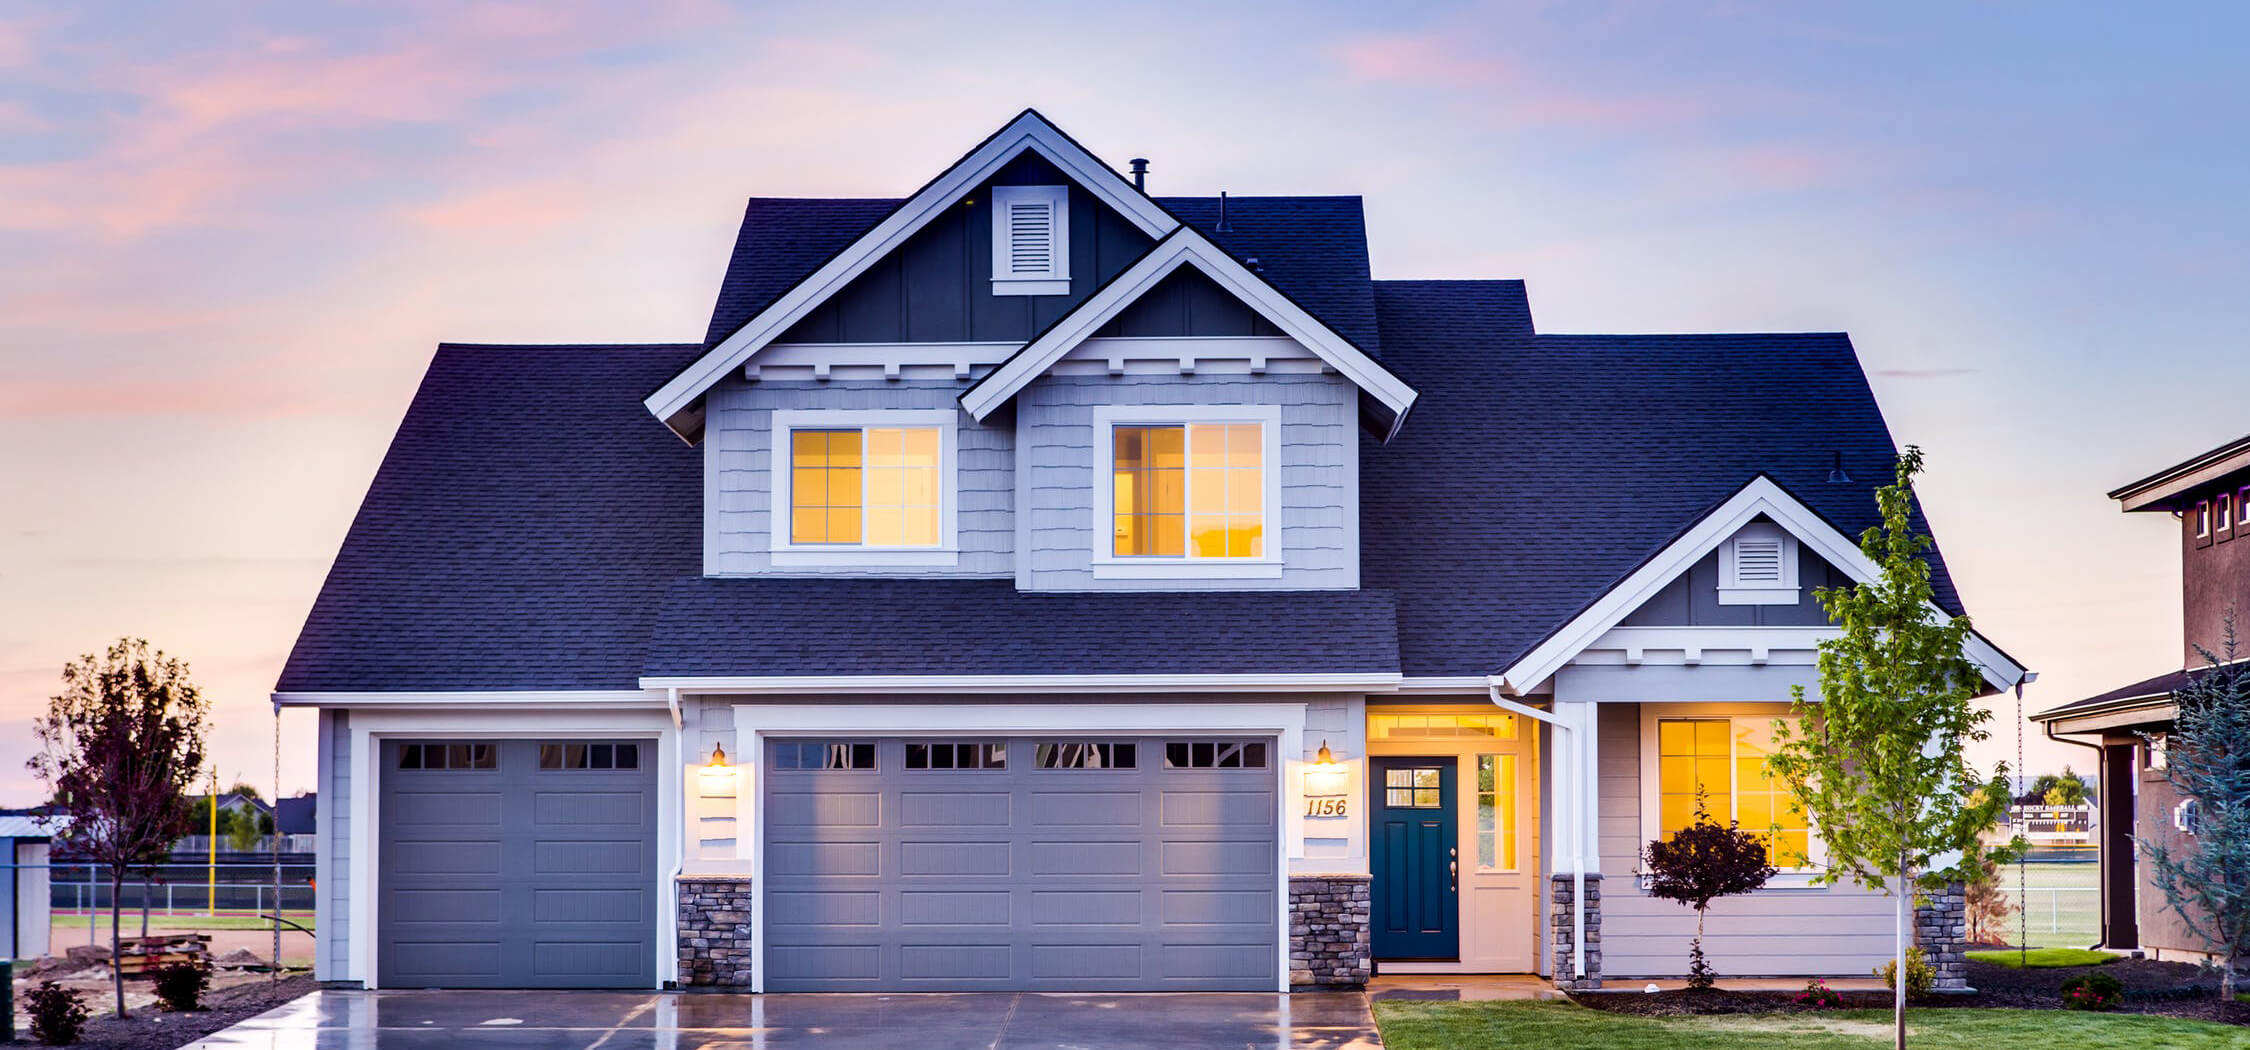 6-questions-you-need-to-ask-before-you-install-a-new-garage-door-1.jpeg